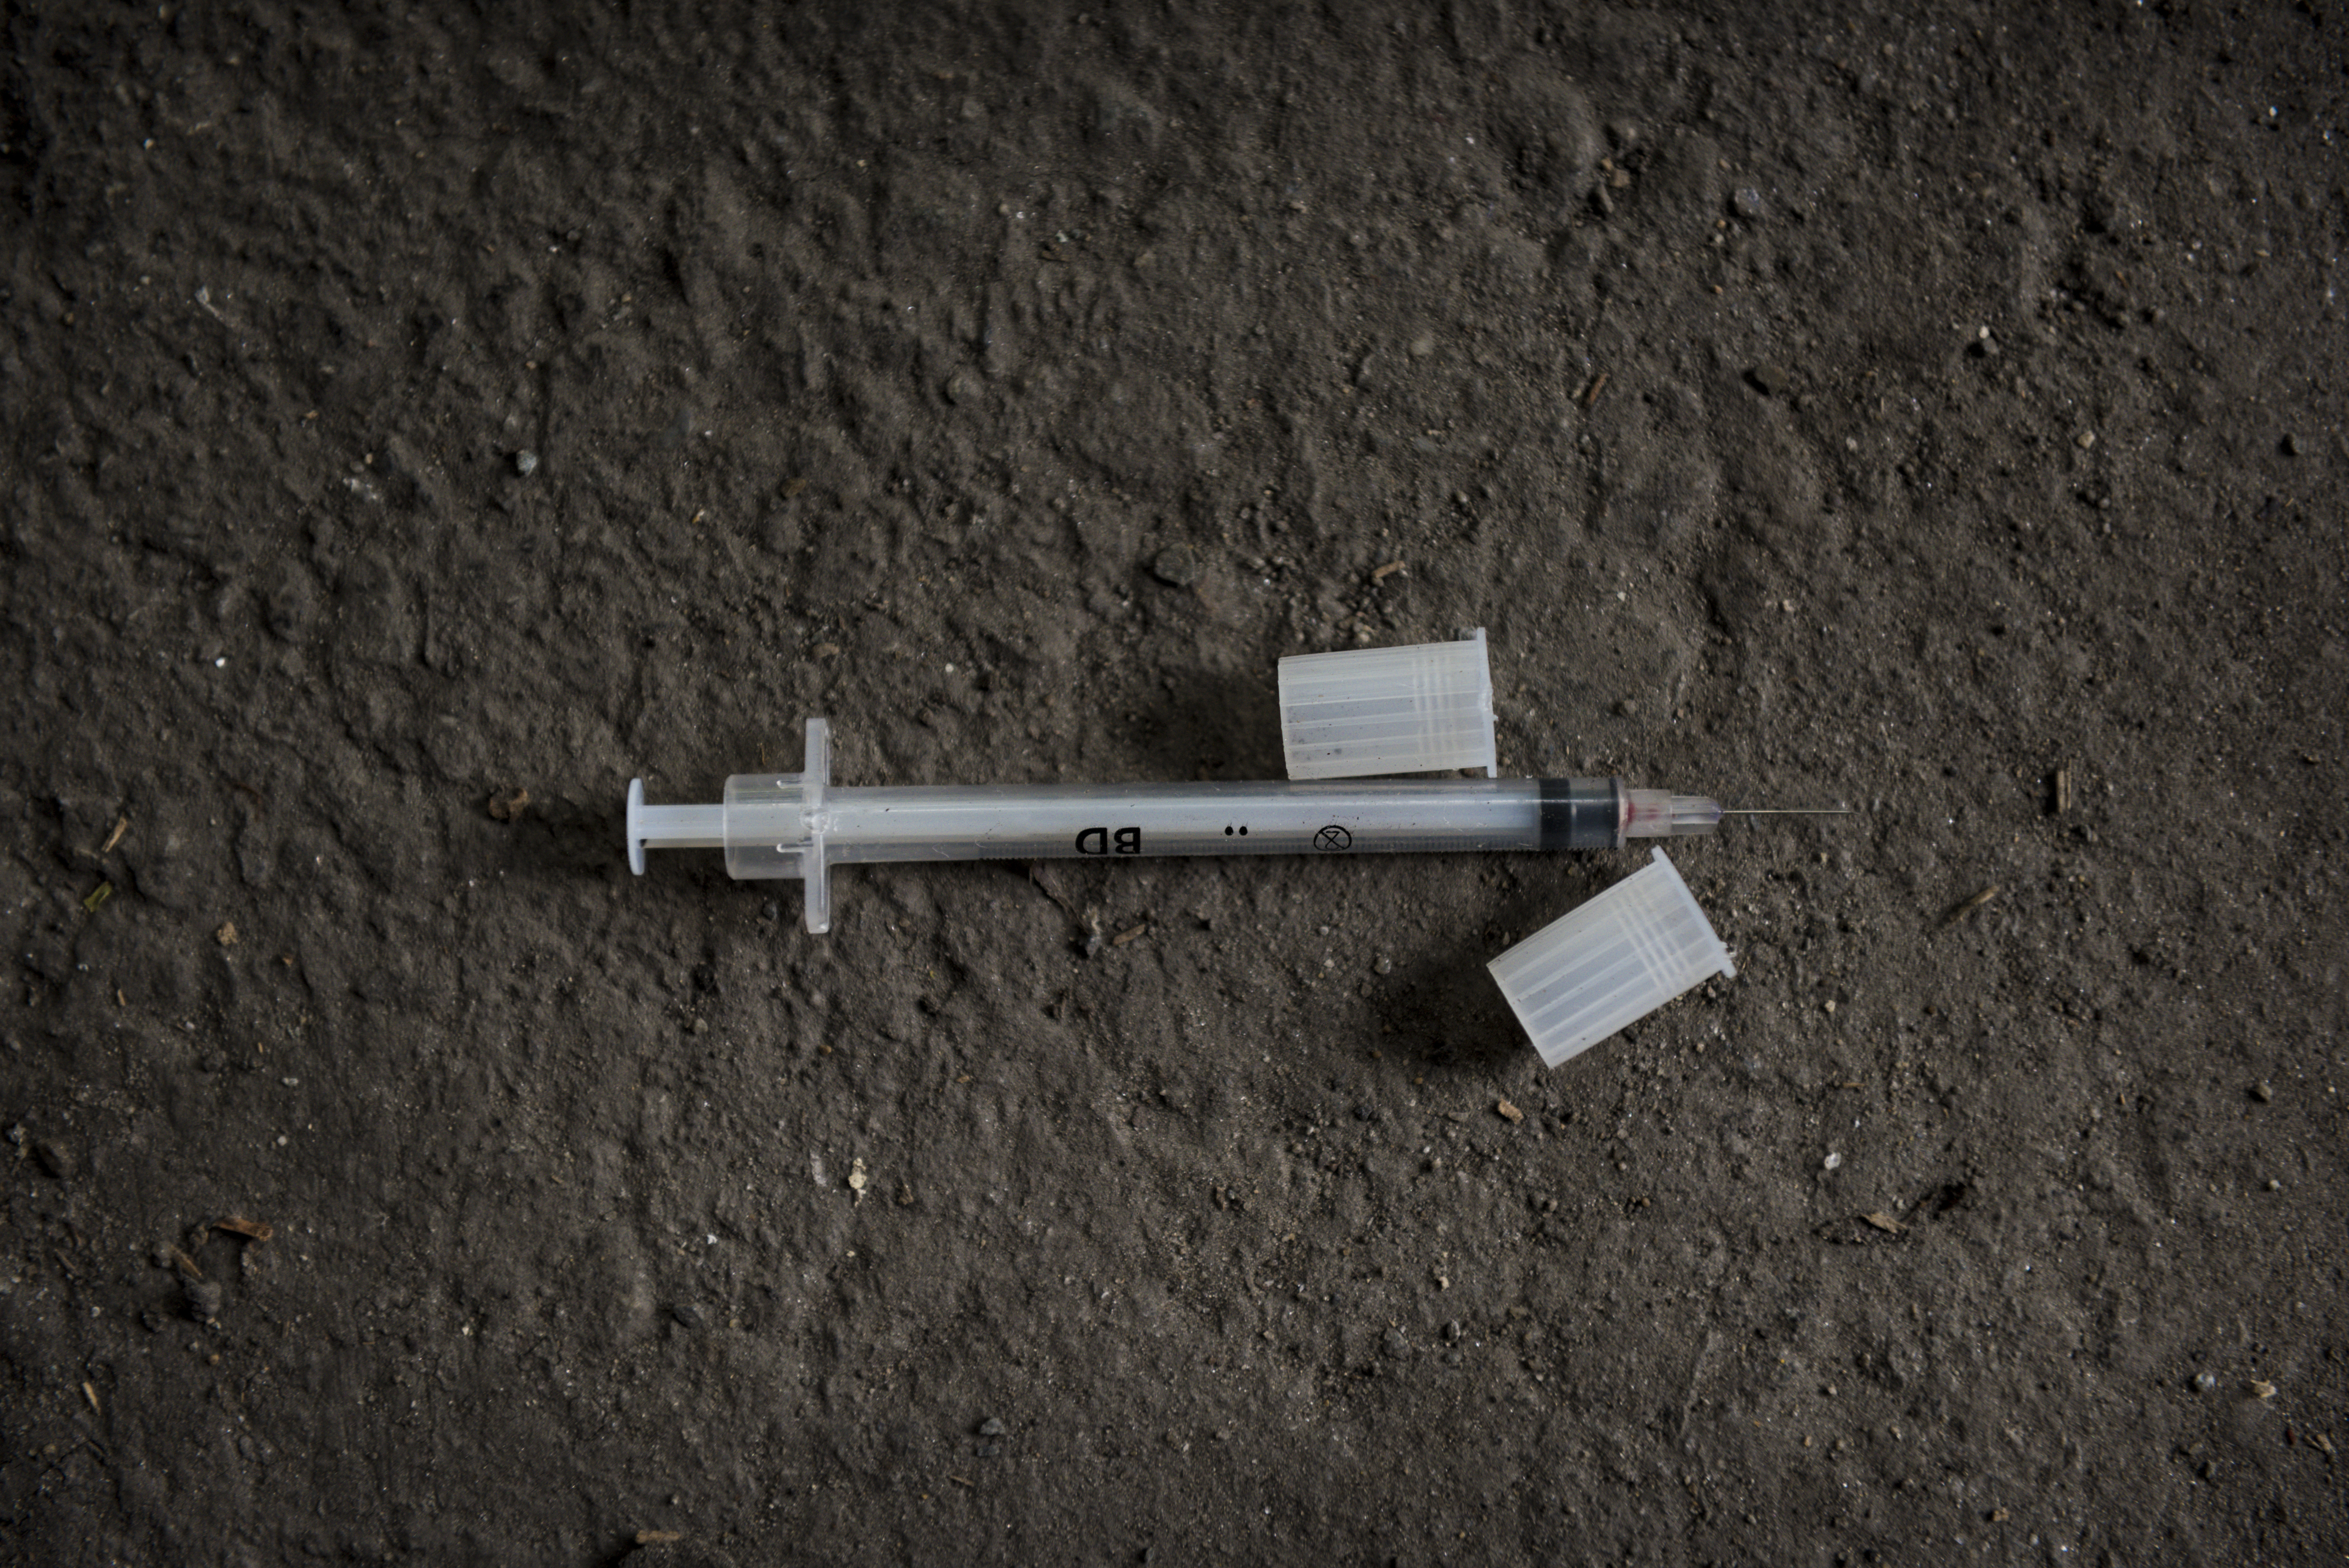 Cities are considering safe injection sites. A federal judge just said they're legal.